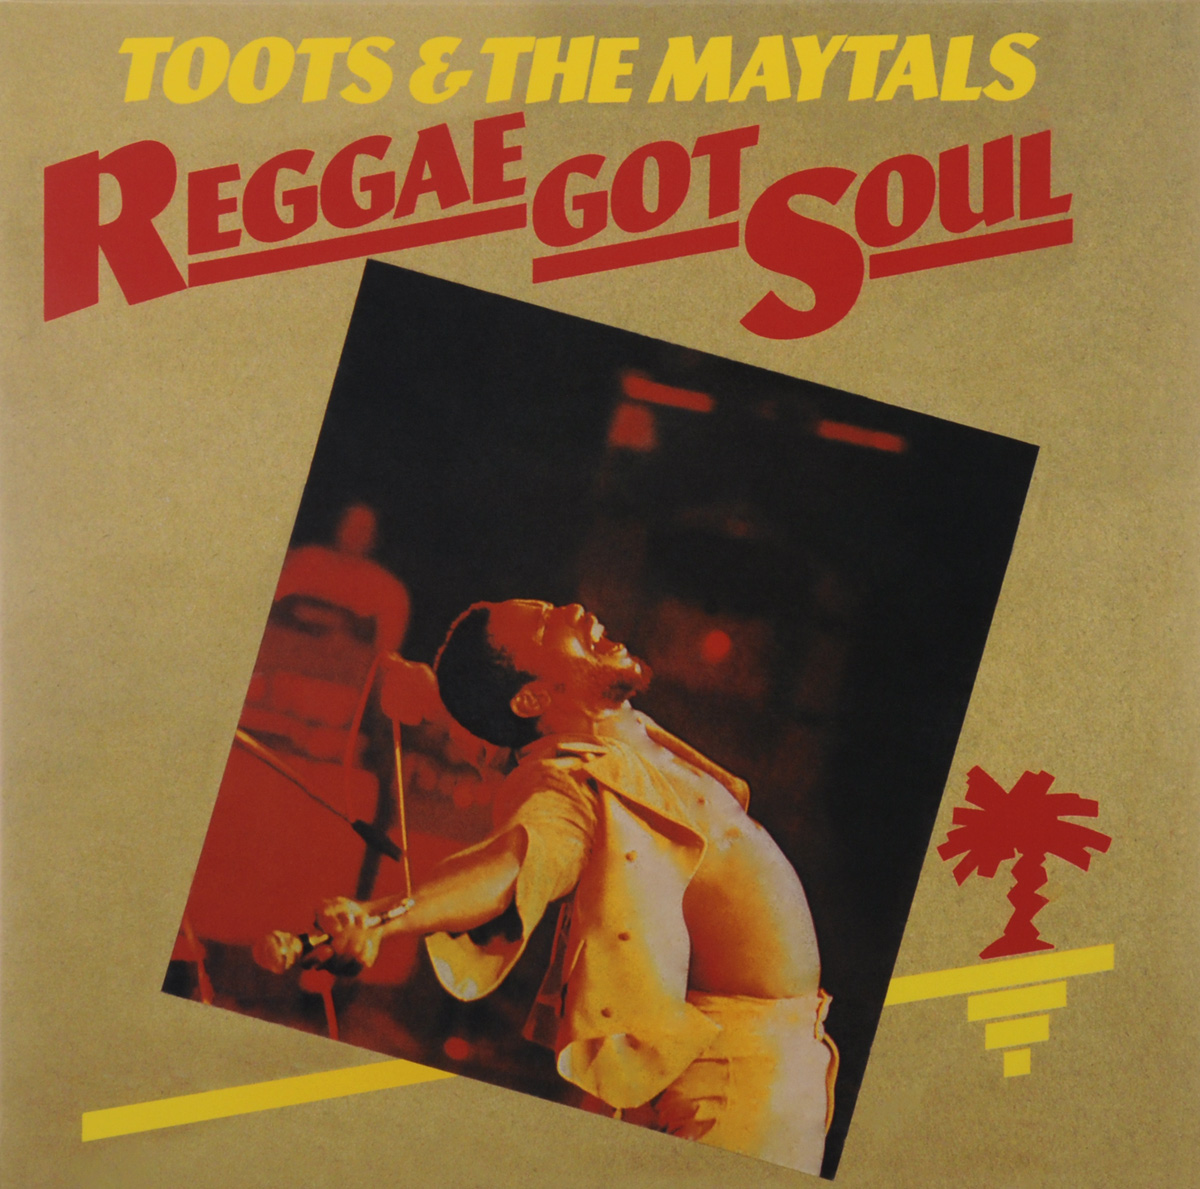 Toots & The Maytals Toots & The Maytals. Reggae Got Soul (2 LP) soul ii soul soul ii soul volume iv the classic singles 88 93 2 lp